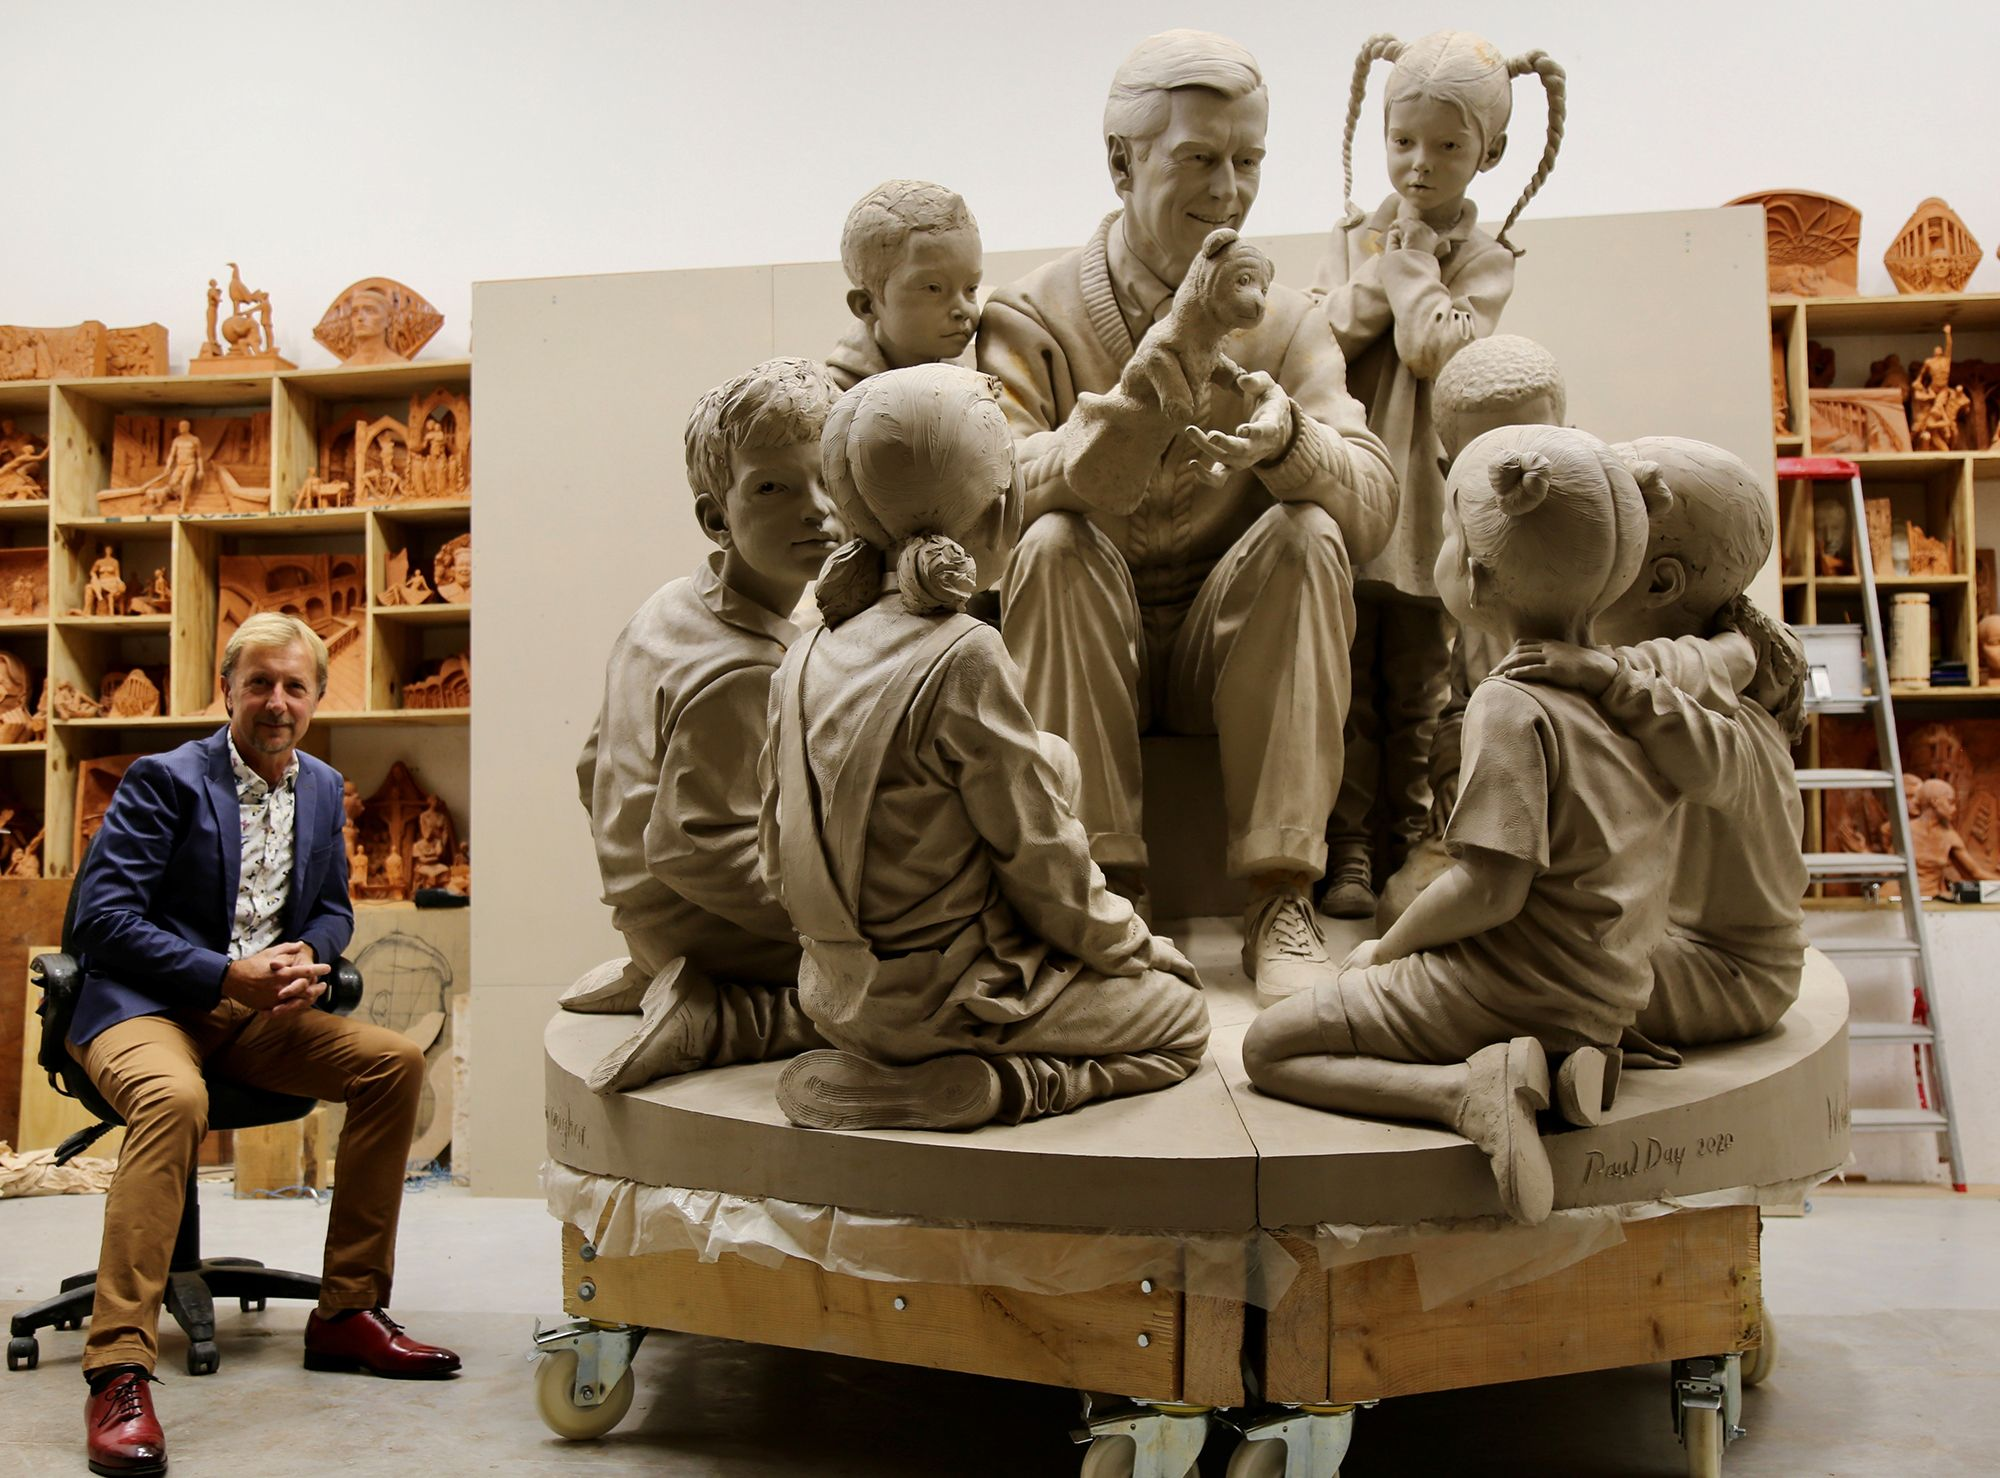 Artist Paul Day pictured with the unfinished sculpture of Mister Rogers for Rollins College.